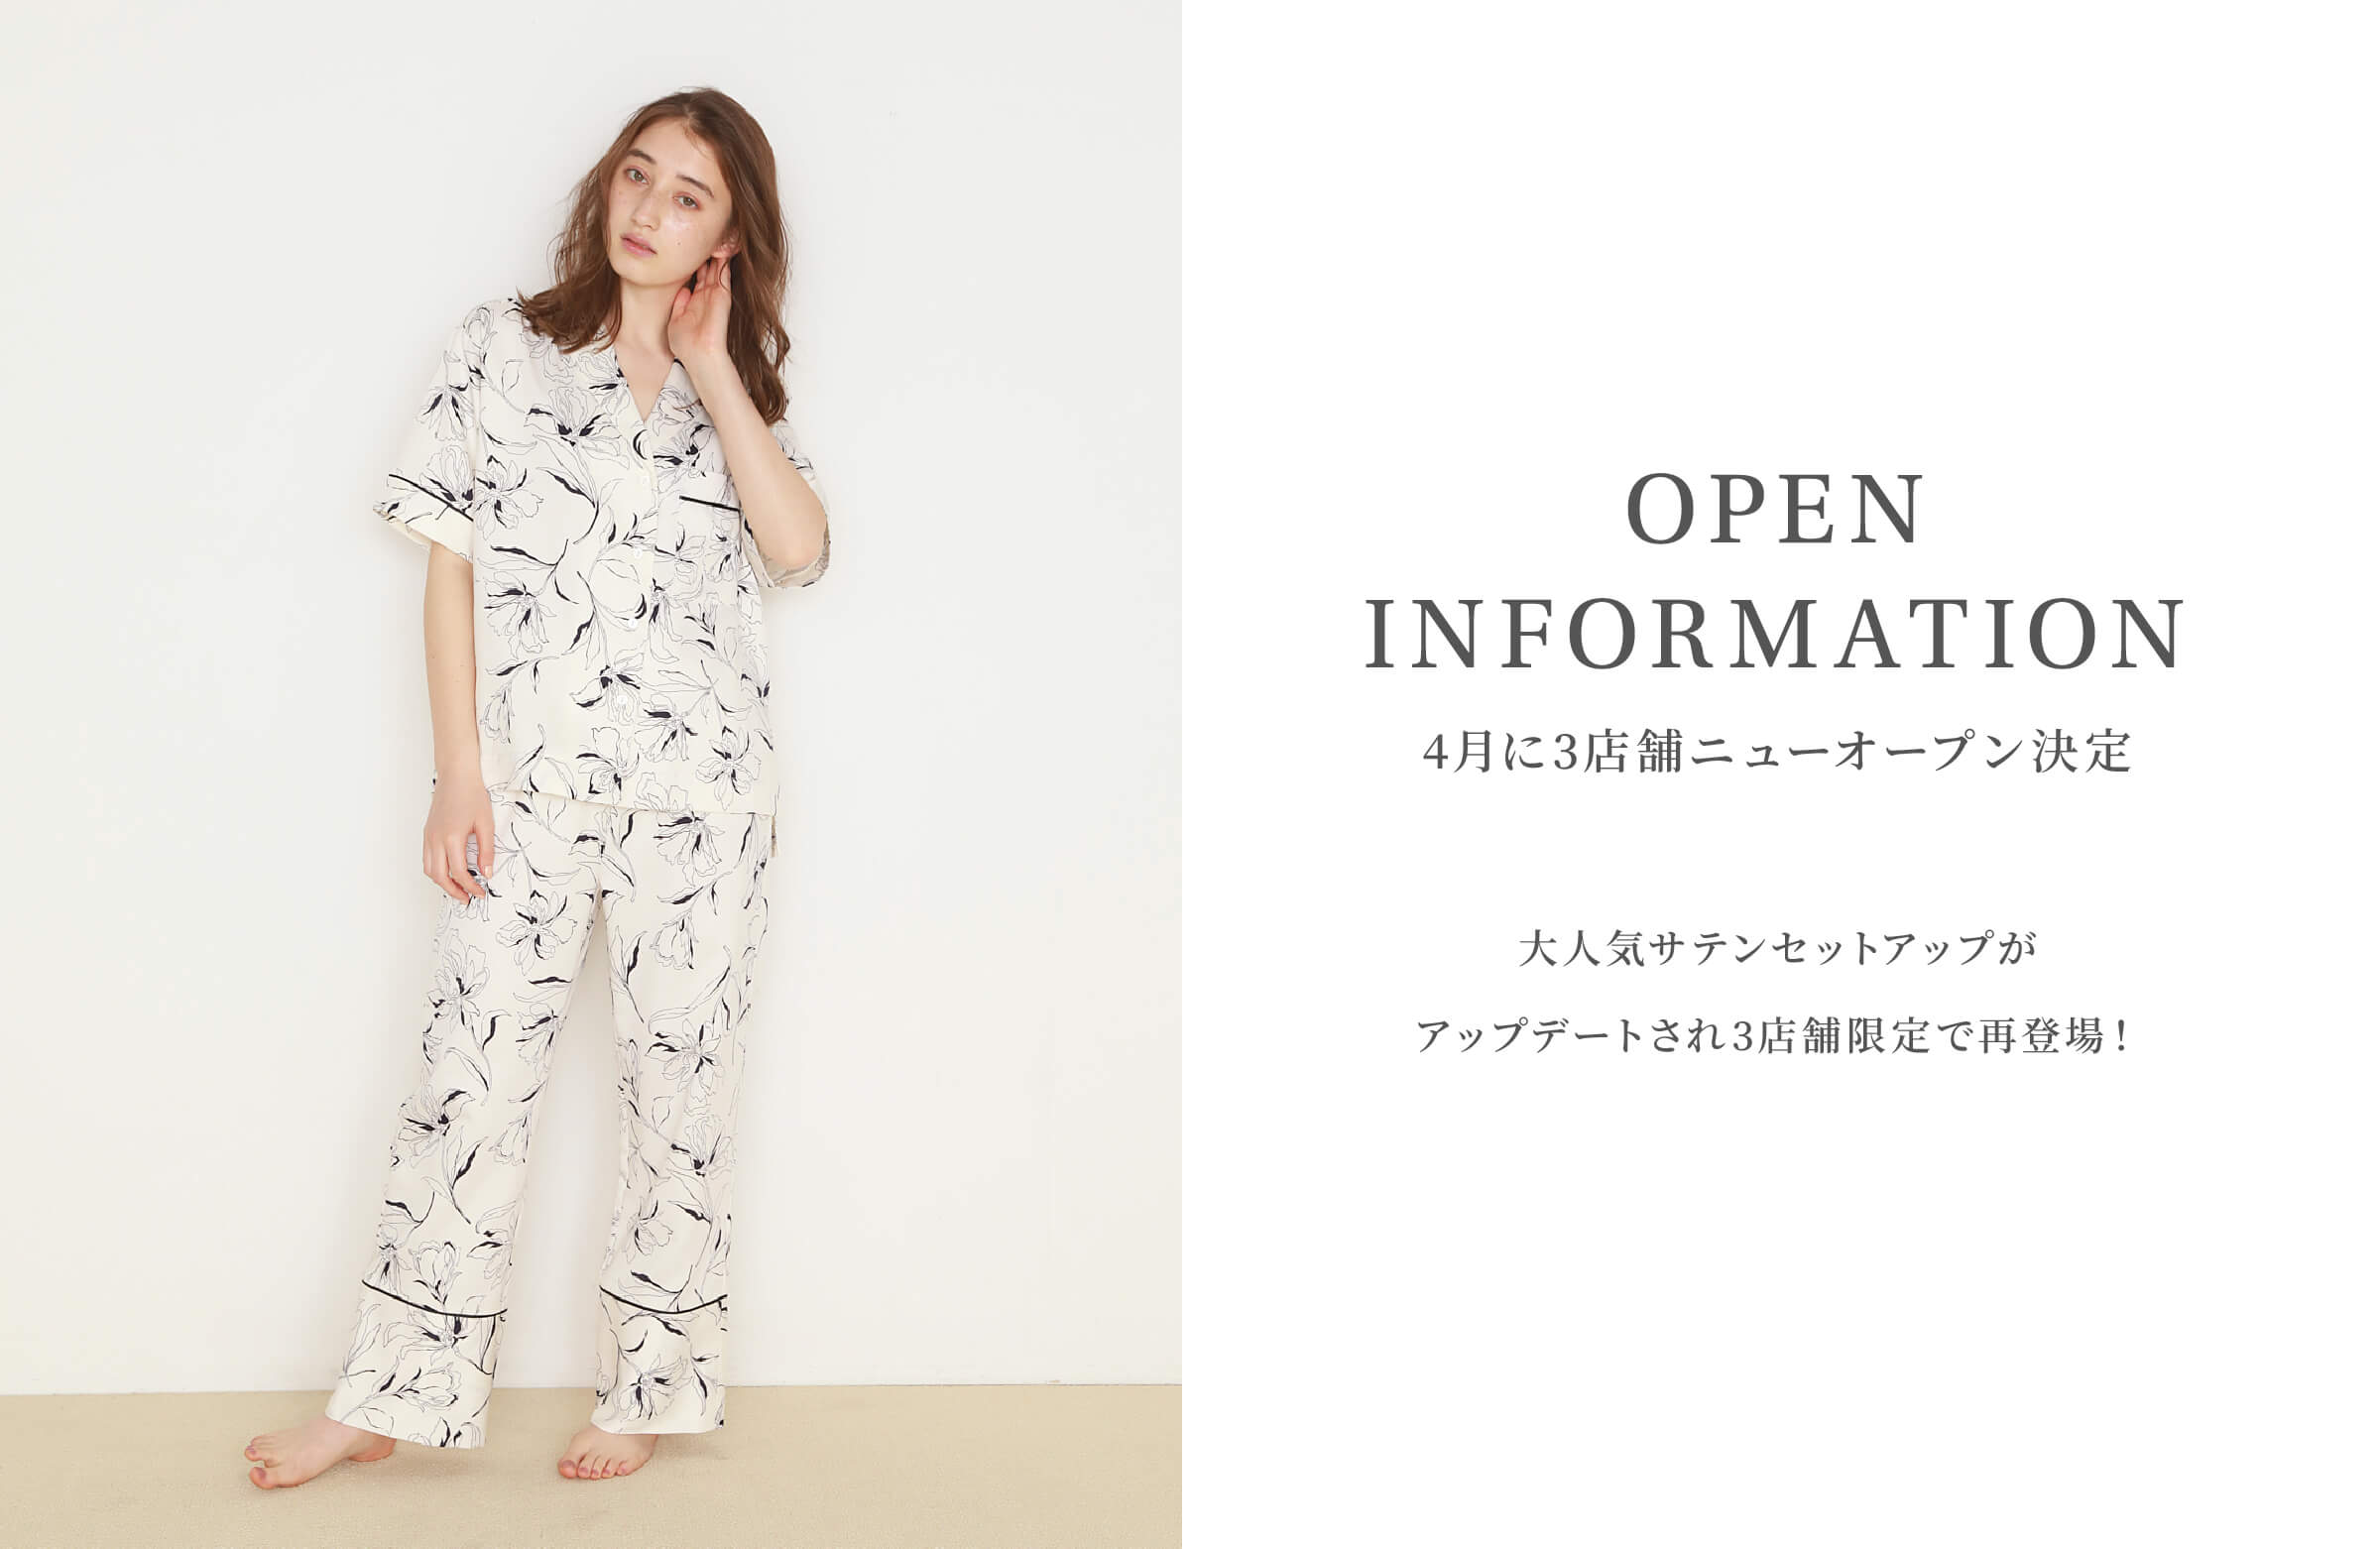 NEW OPEN - information -